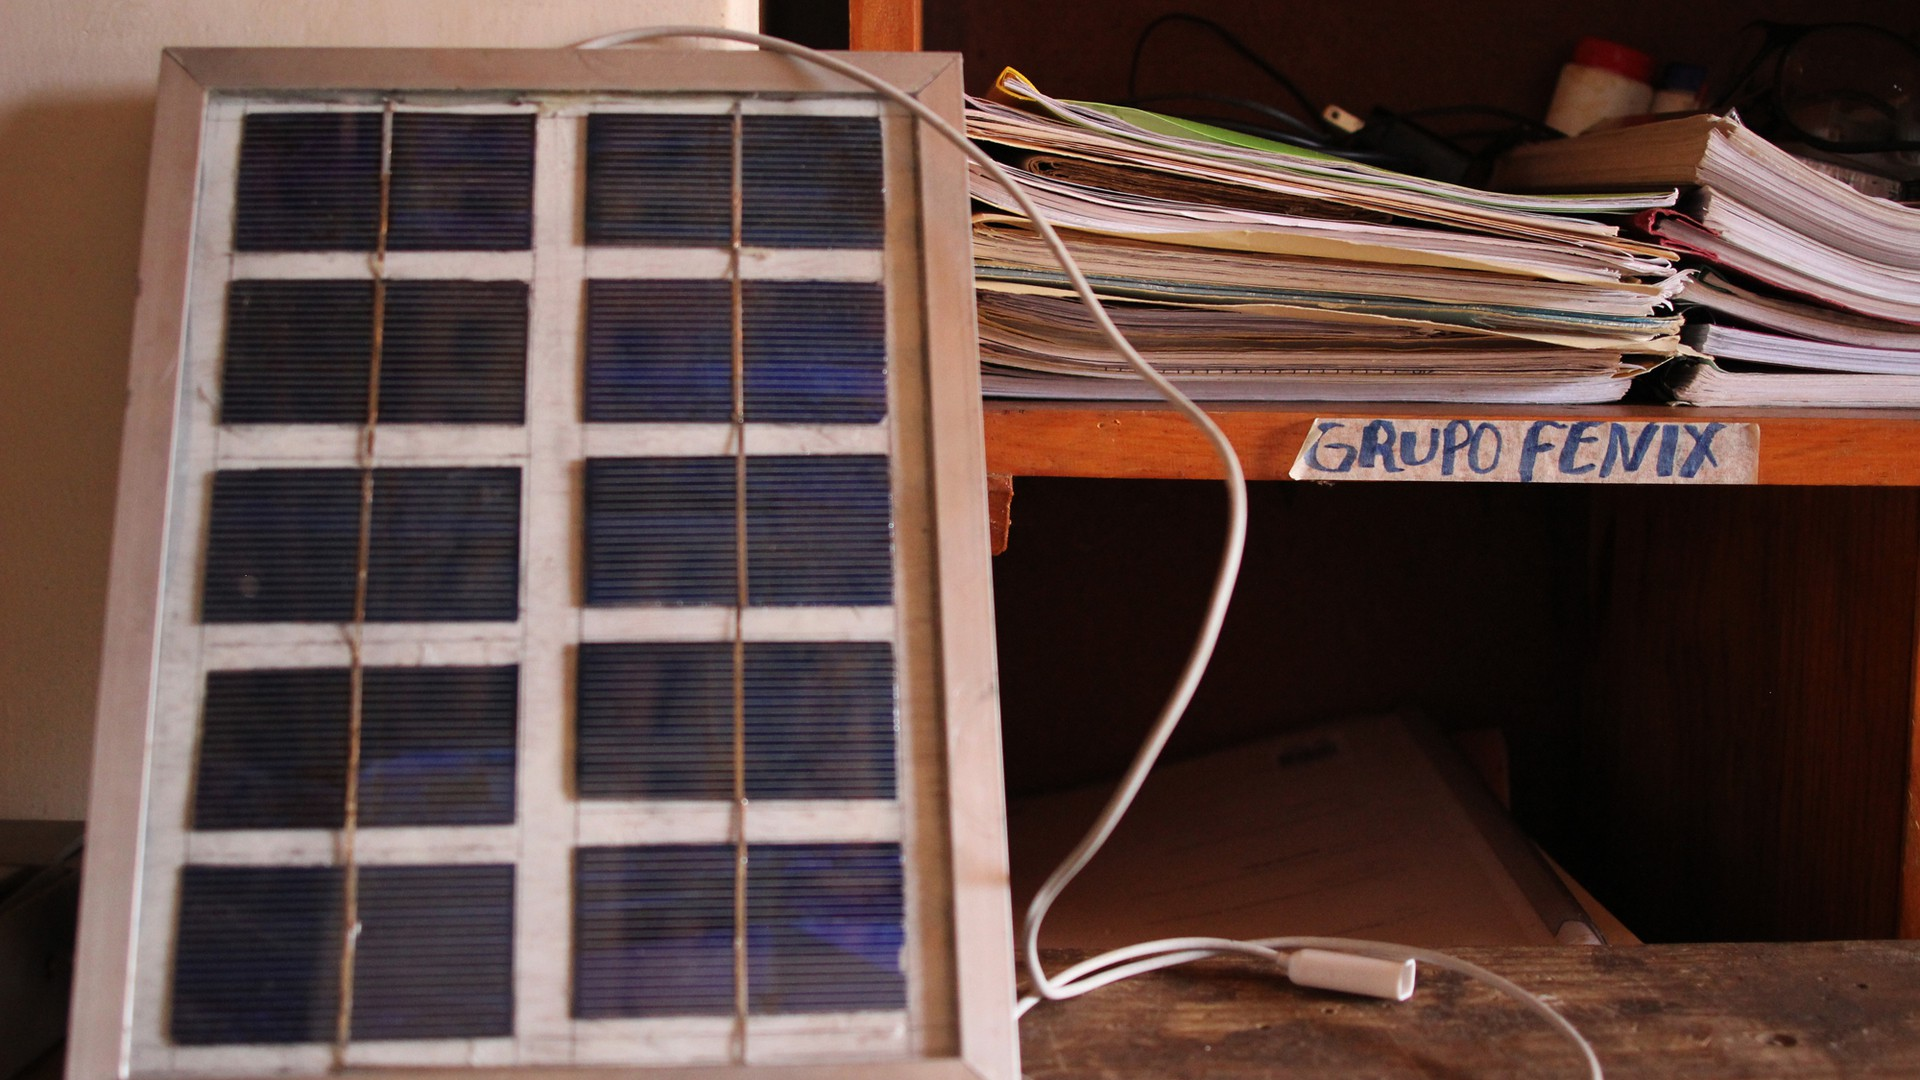 A solar cellphone charger stands beside a set of cubbies used for organization in the Grupo Fénix building at the Solar Center in Sabana Grande, Nicaragua, on March 9, 2015. International students build a charger like this when they visit in preparation for building a larger panel to install on someone's home. Students can keep this solar charger when they leave. (Photo by Molly Bilker)